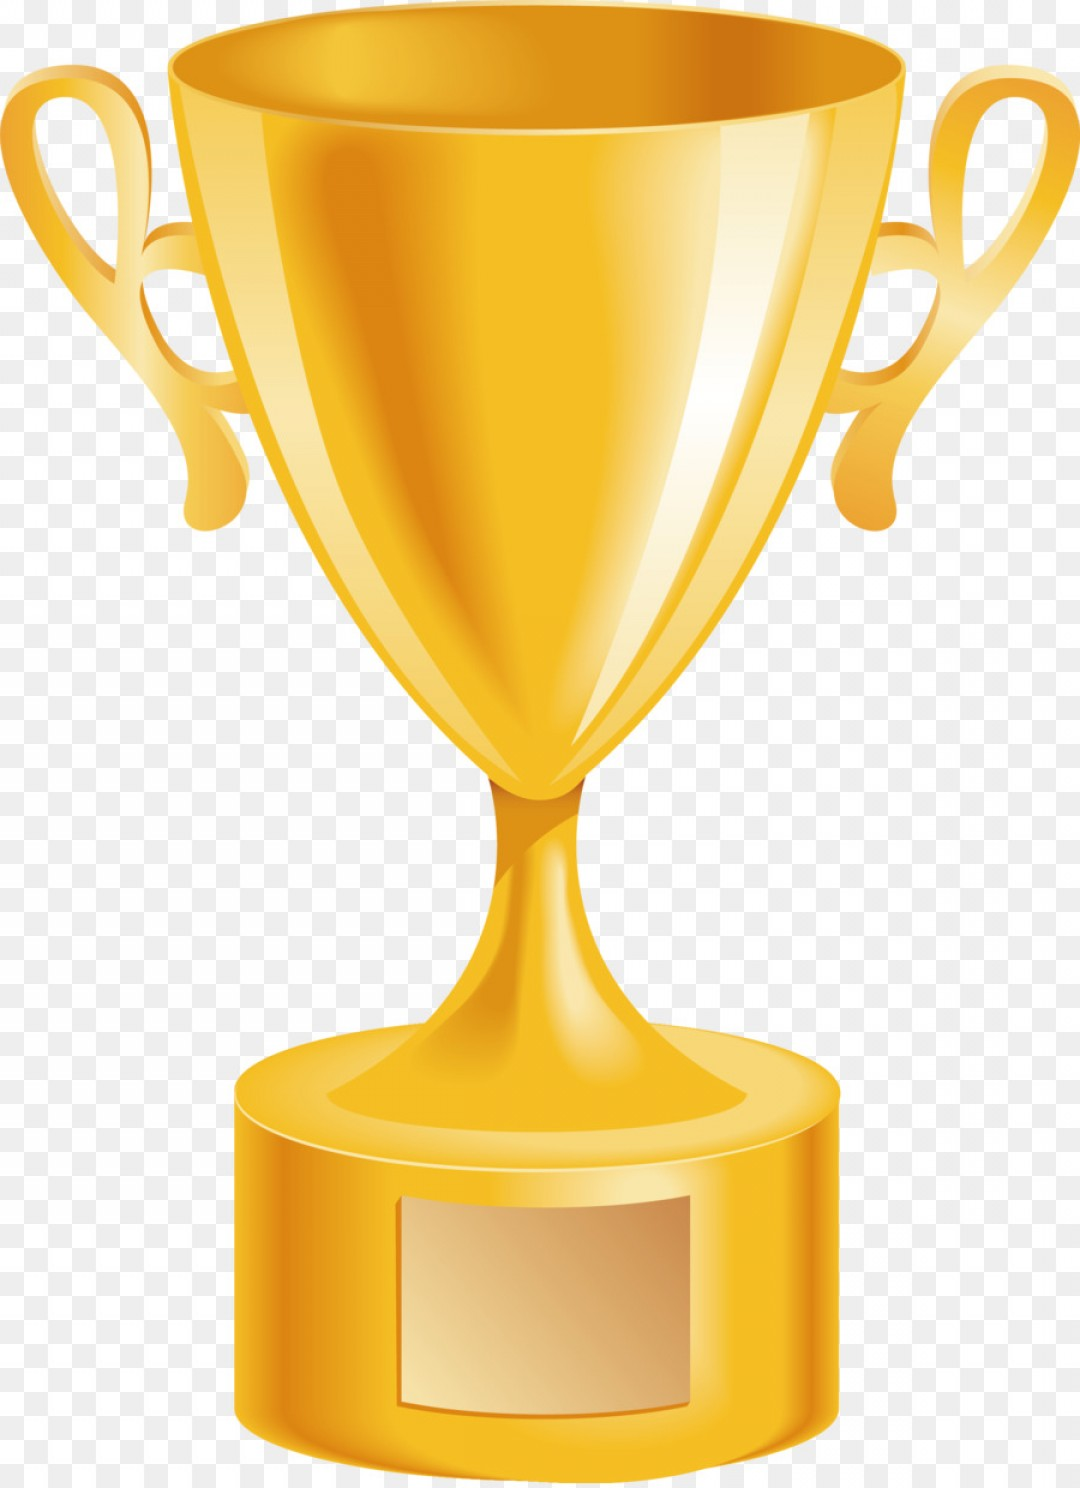 Png Trophy Scalable Vector Graphics Clip Art Vector Tr.